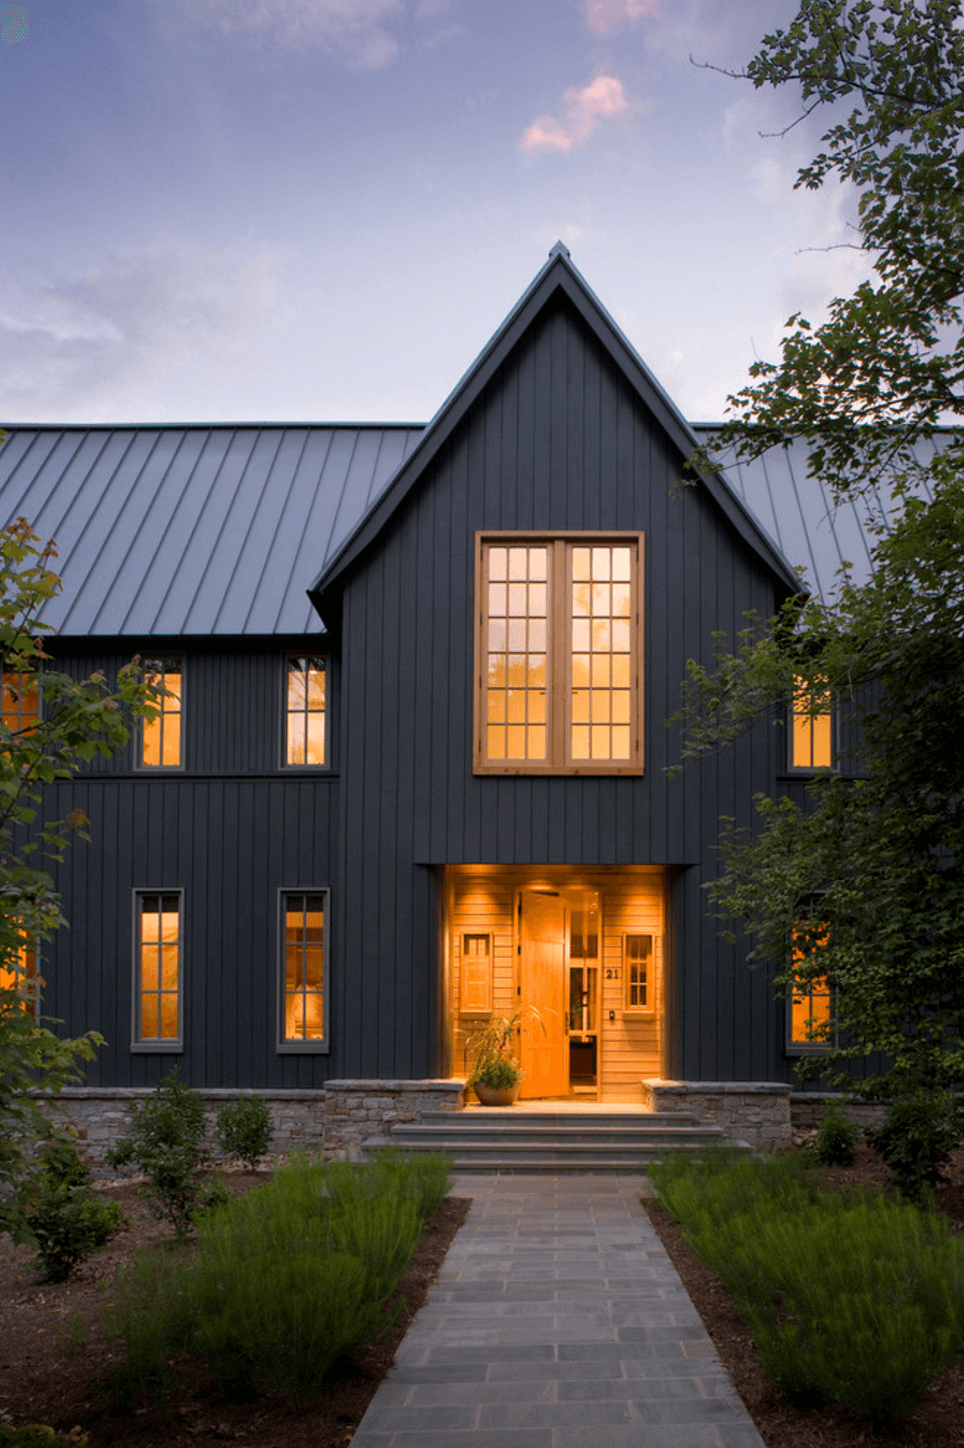 20 Dramatic Home Exteriors Proving Black Is The New Black,Senior High School Shirt Designs